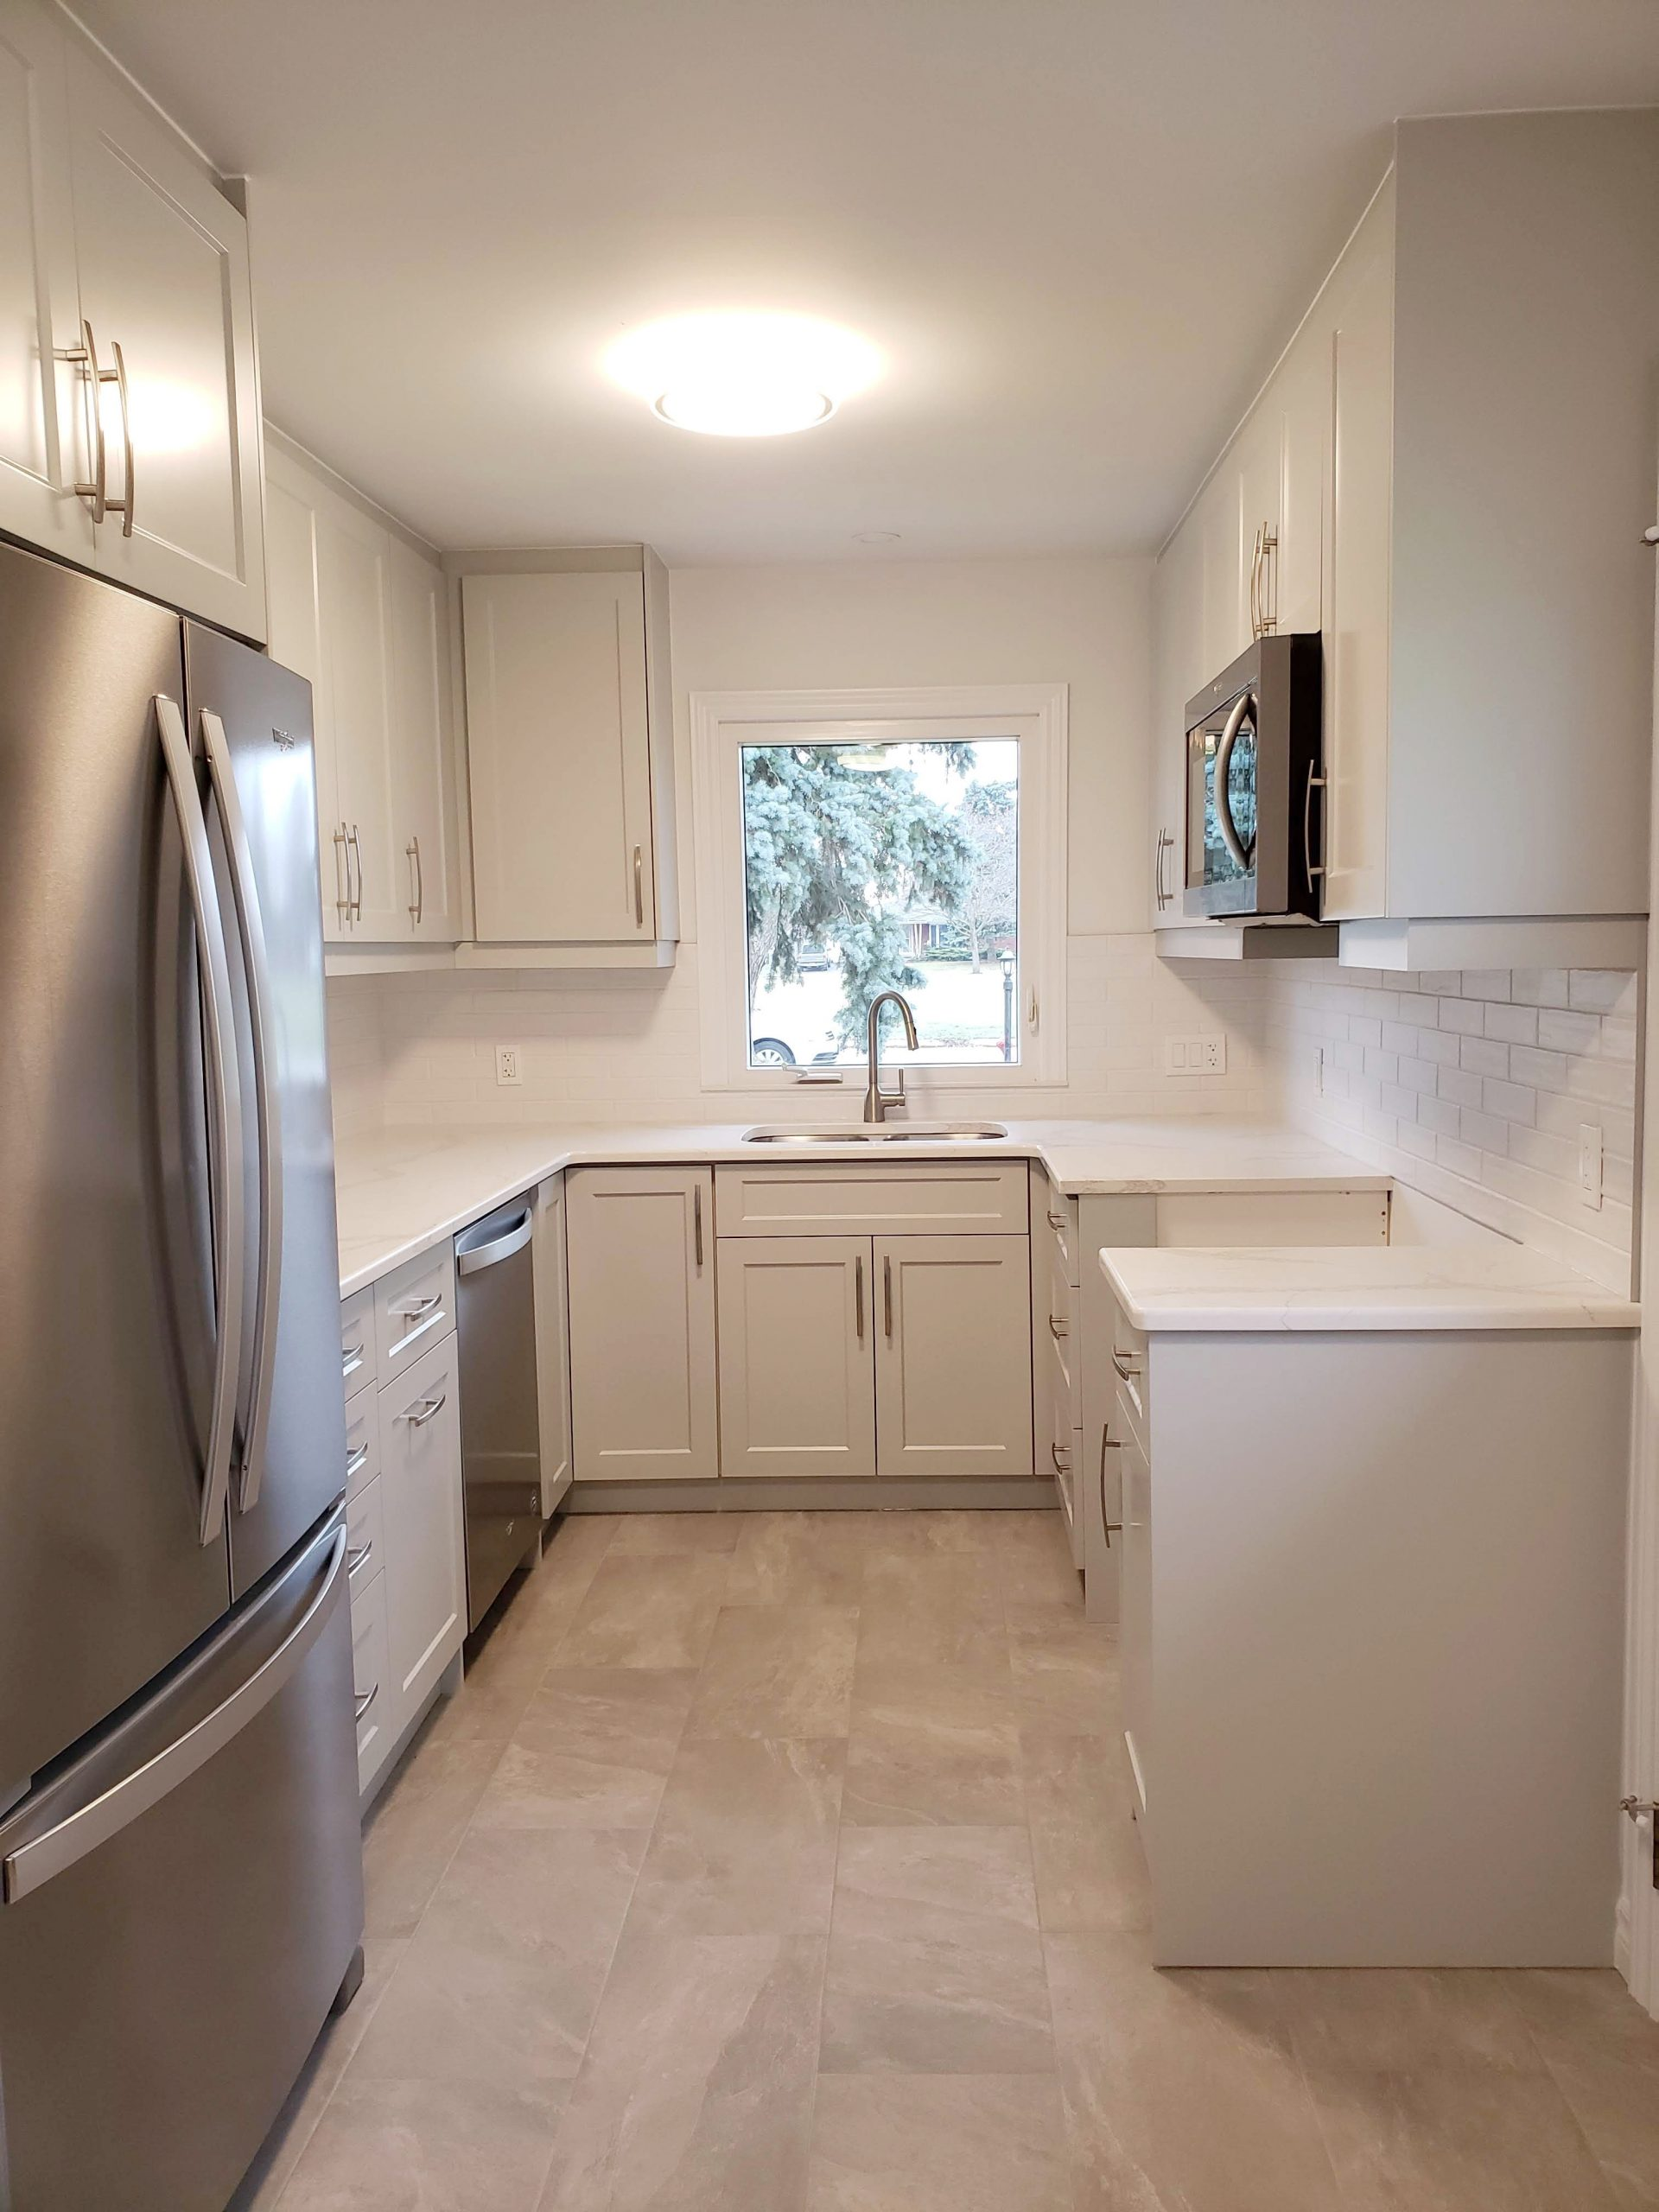 U-Shaped white kitchen